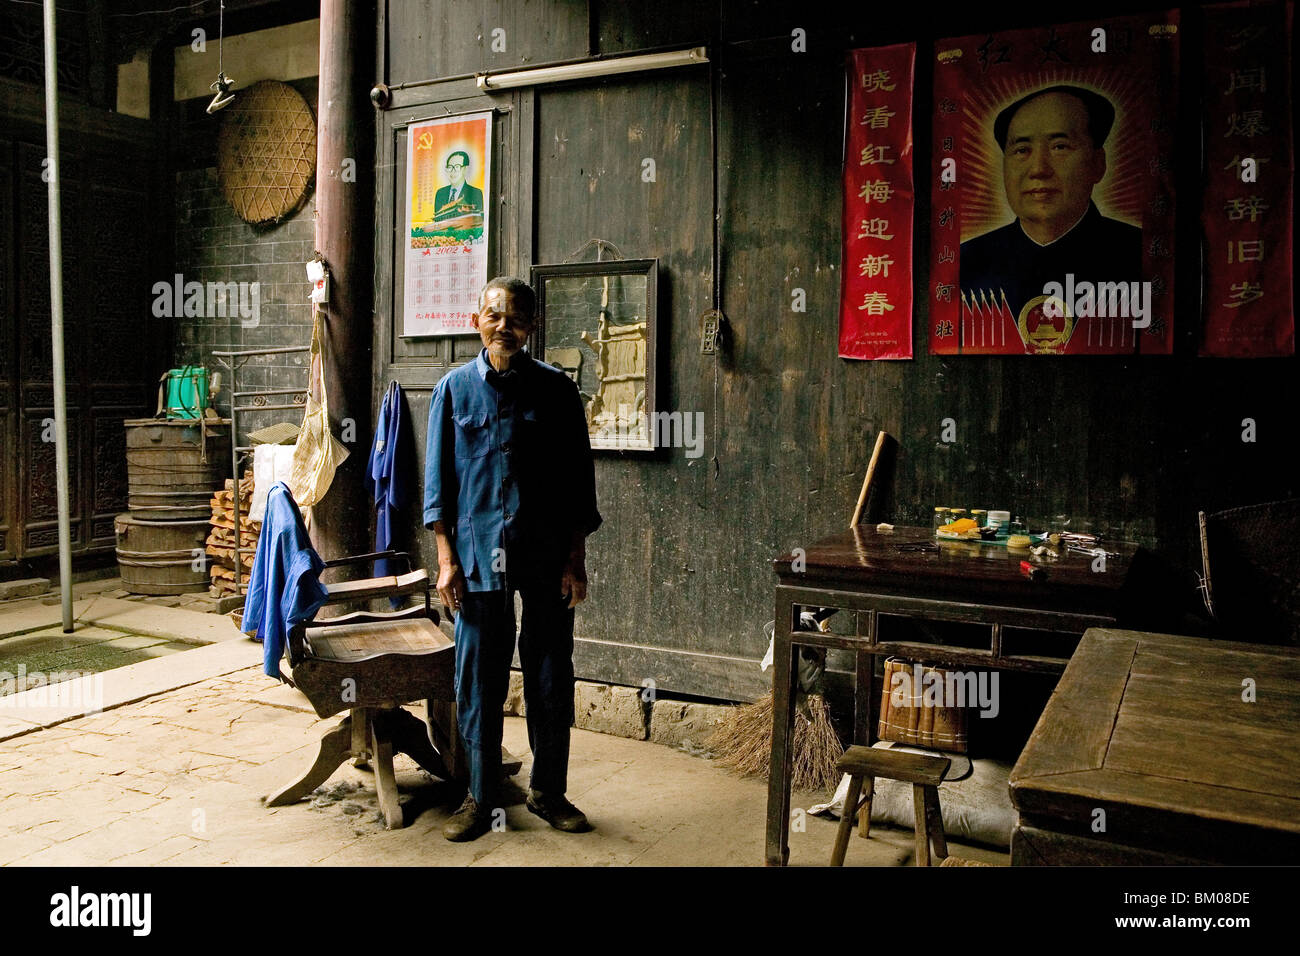 village barber, Mao portrait, courtyard of timber house in Chengkun, ancient village, living museum, China, Asia, - Stock Image